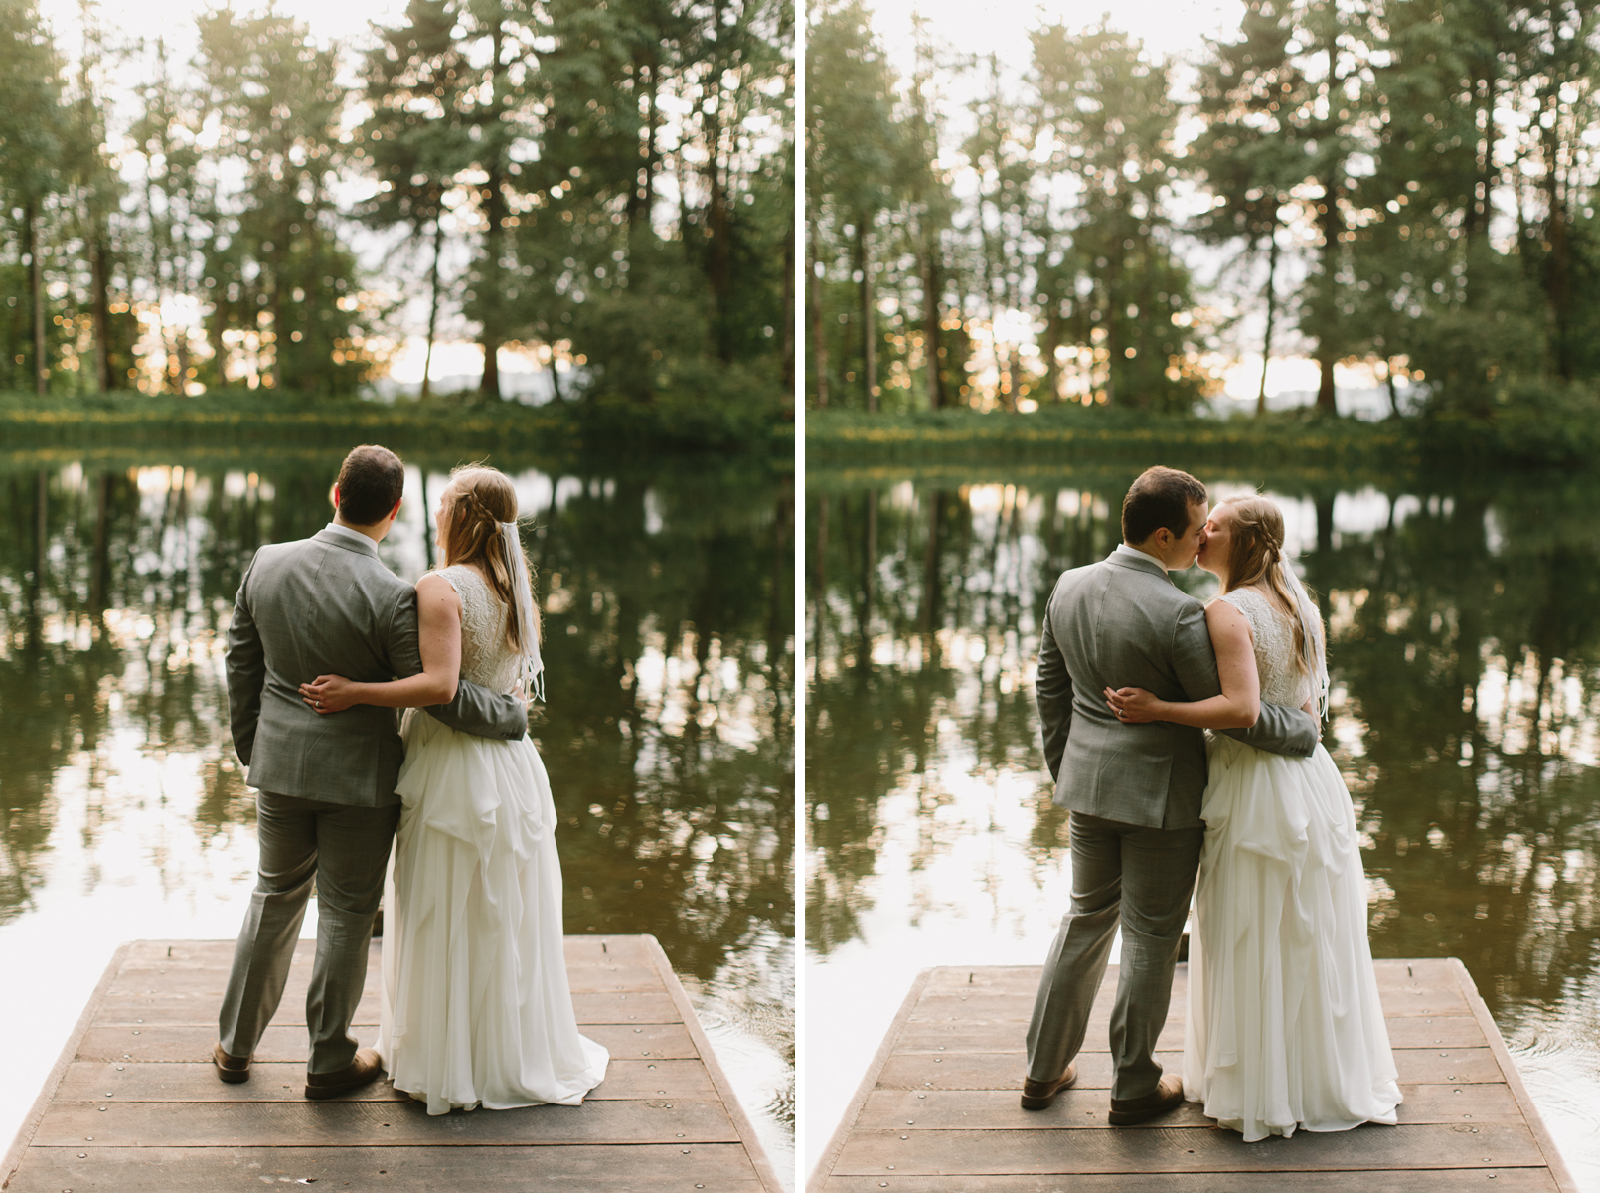 The bride and groom kiss during wedding portraits at Bridal Veil Lakes in Corbett, OR